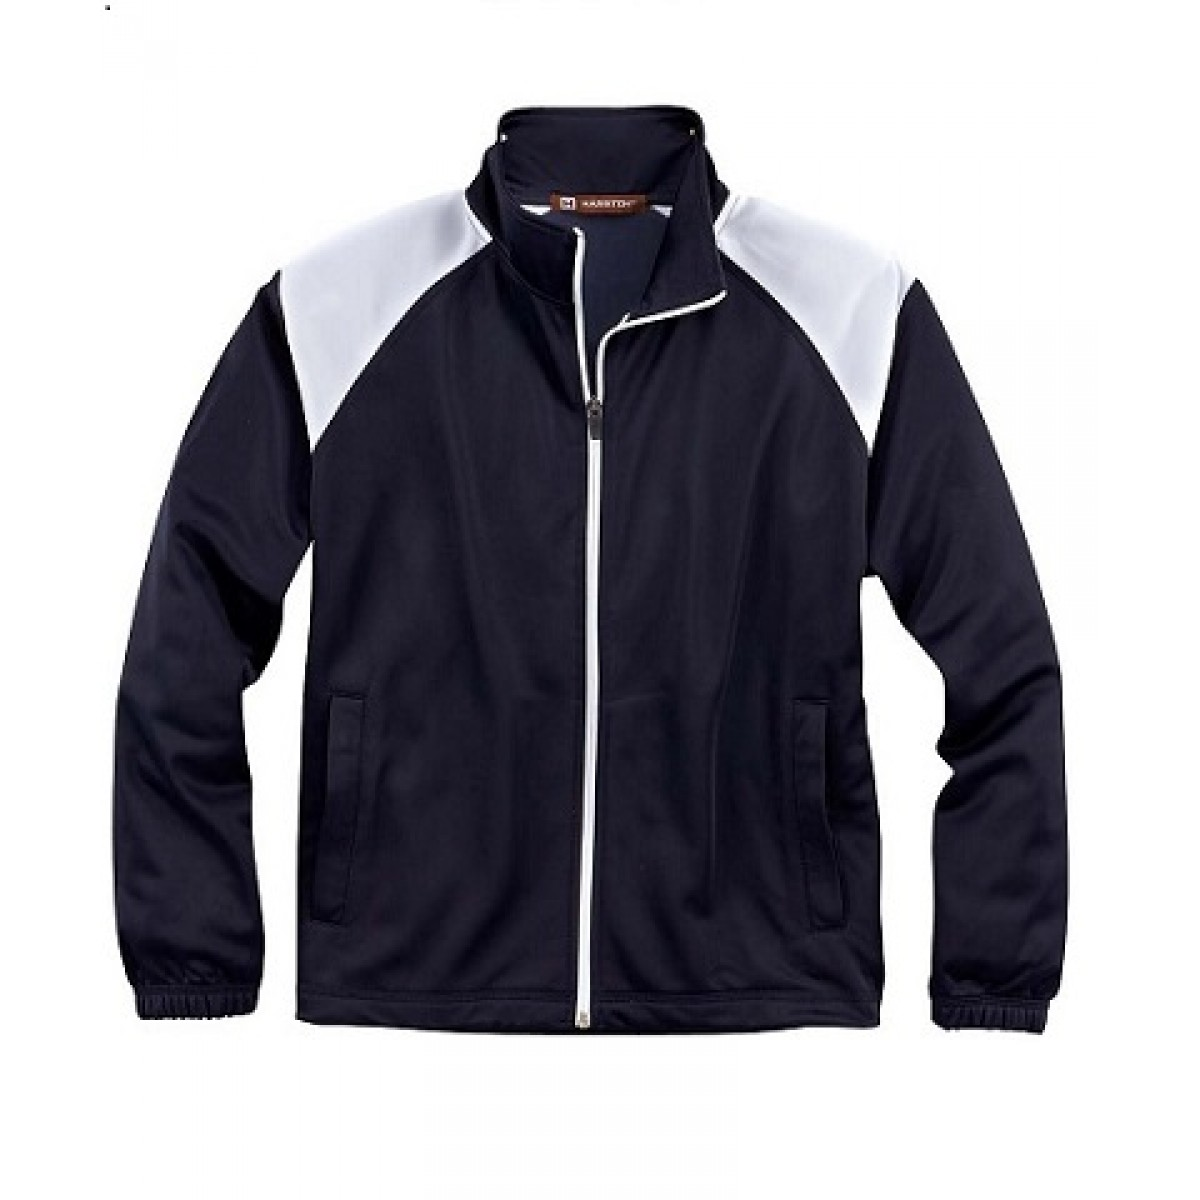 Embroidered Navy Tricot Track Jacket-Navy-M